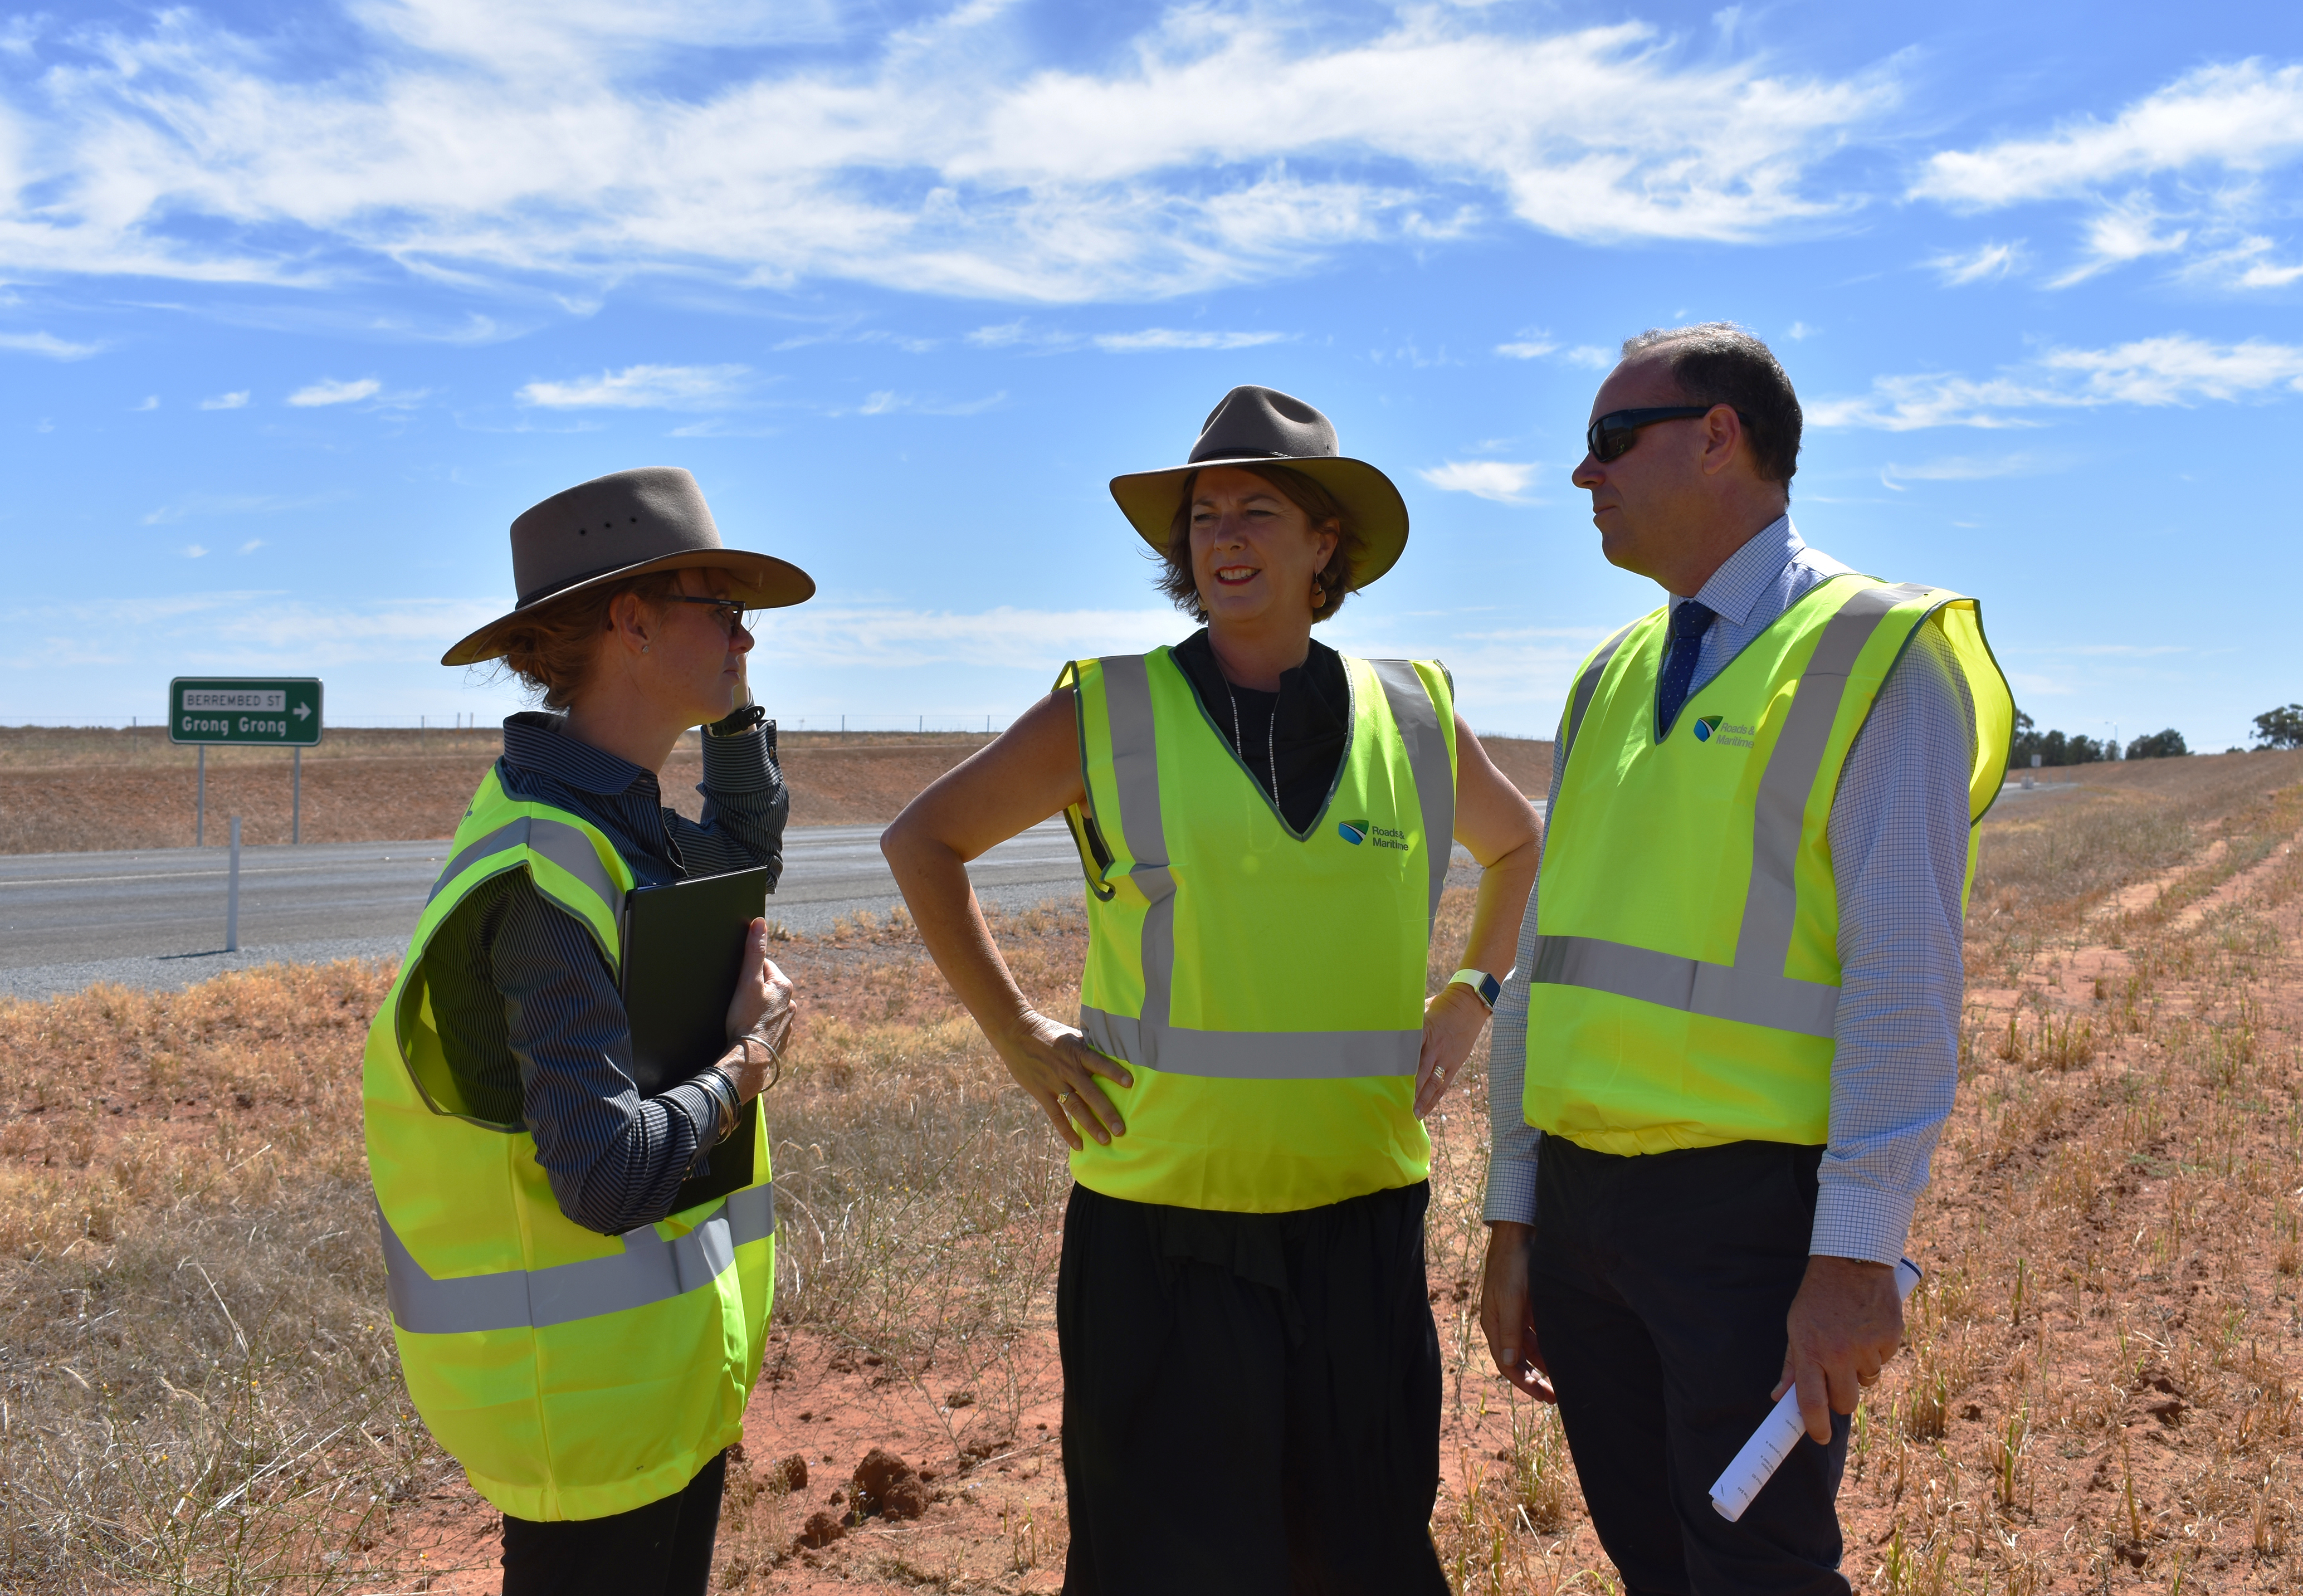 Steph_Cooke_MP_with_Minister_for_Roads__Maritime_and_Freight_Melinda_Pavey__Jonathan_Tasker_Acting_Director_RMS_SW_Region_at_Grong_Grong_bypass_2.jpg